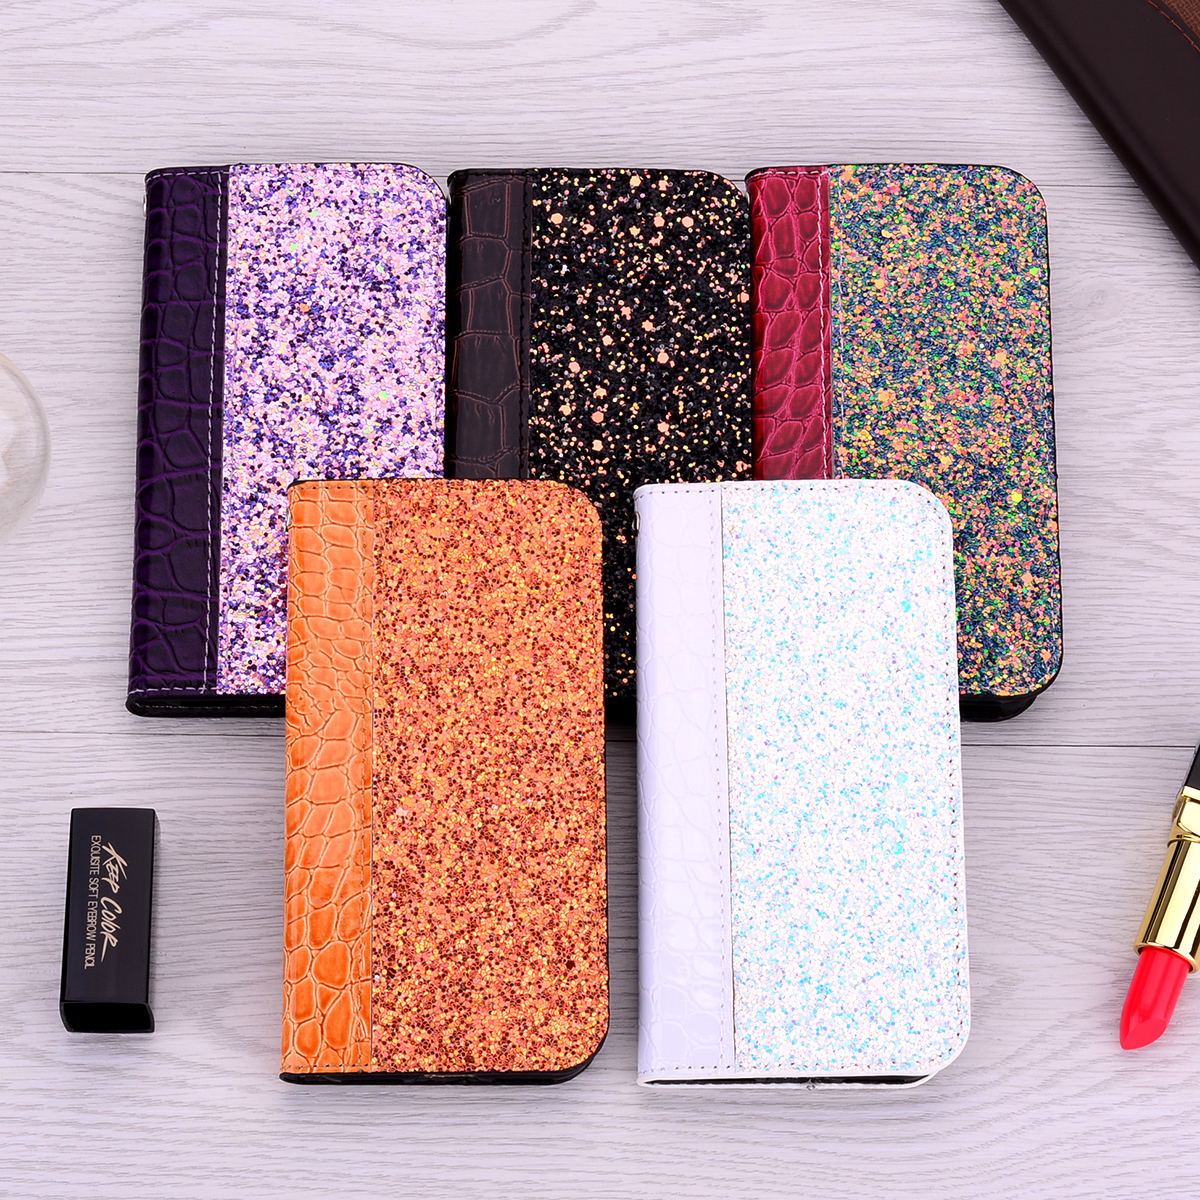 PU Leather Skin Bag Cases For <font><b>Huawei</b></font> <font><b>Mate</b></font> <font><b>20</b></font> <font><b>Lite</b></font> Book Style Flip <font><b>Smartphone</b></font> Cover For <font><b>Huawei</b></font> <font><b>Mate</b></font> 10 Pro Mate20 20X 5G Coque image